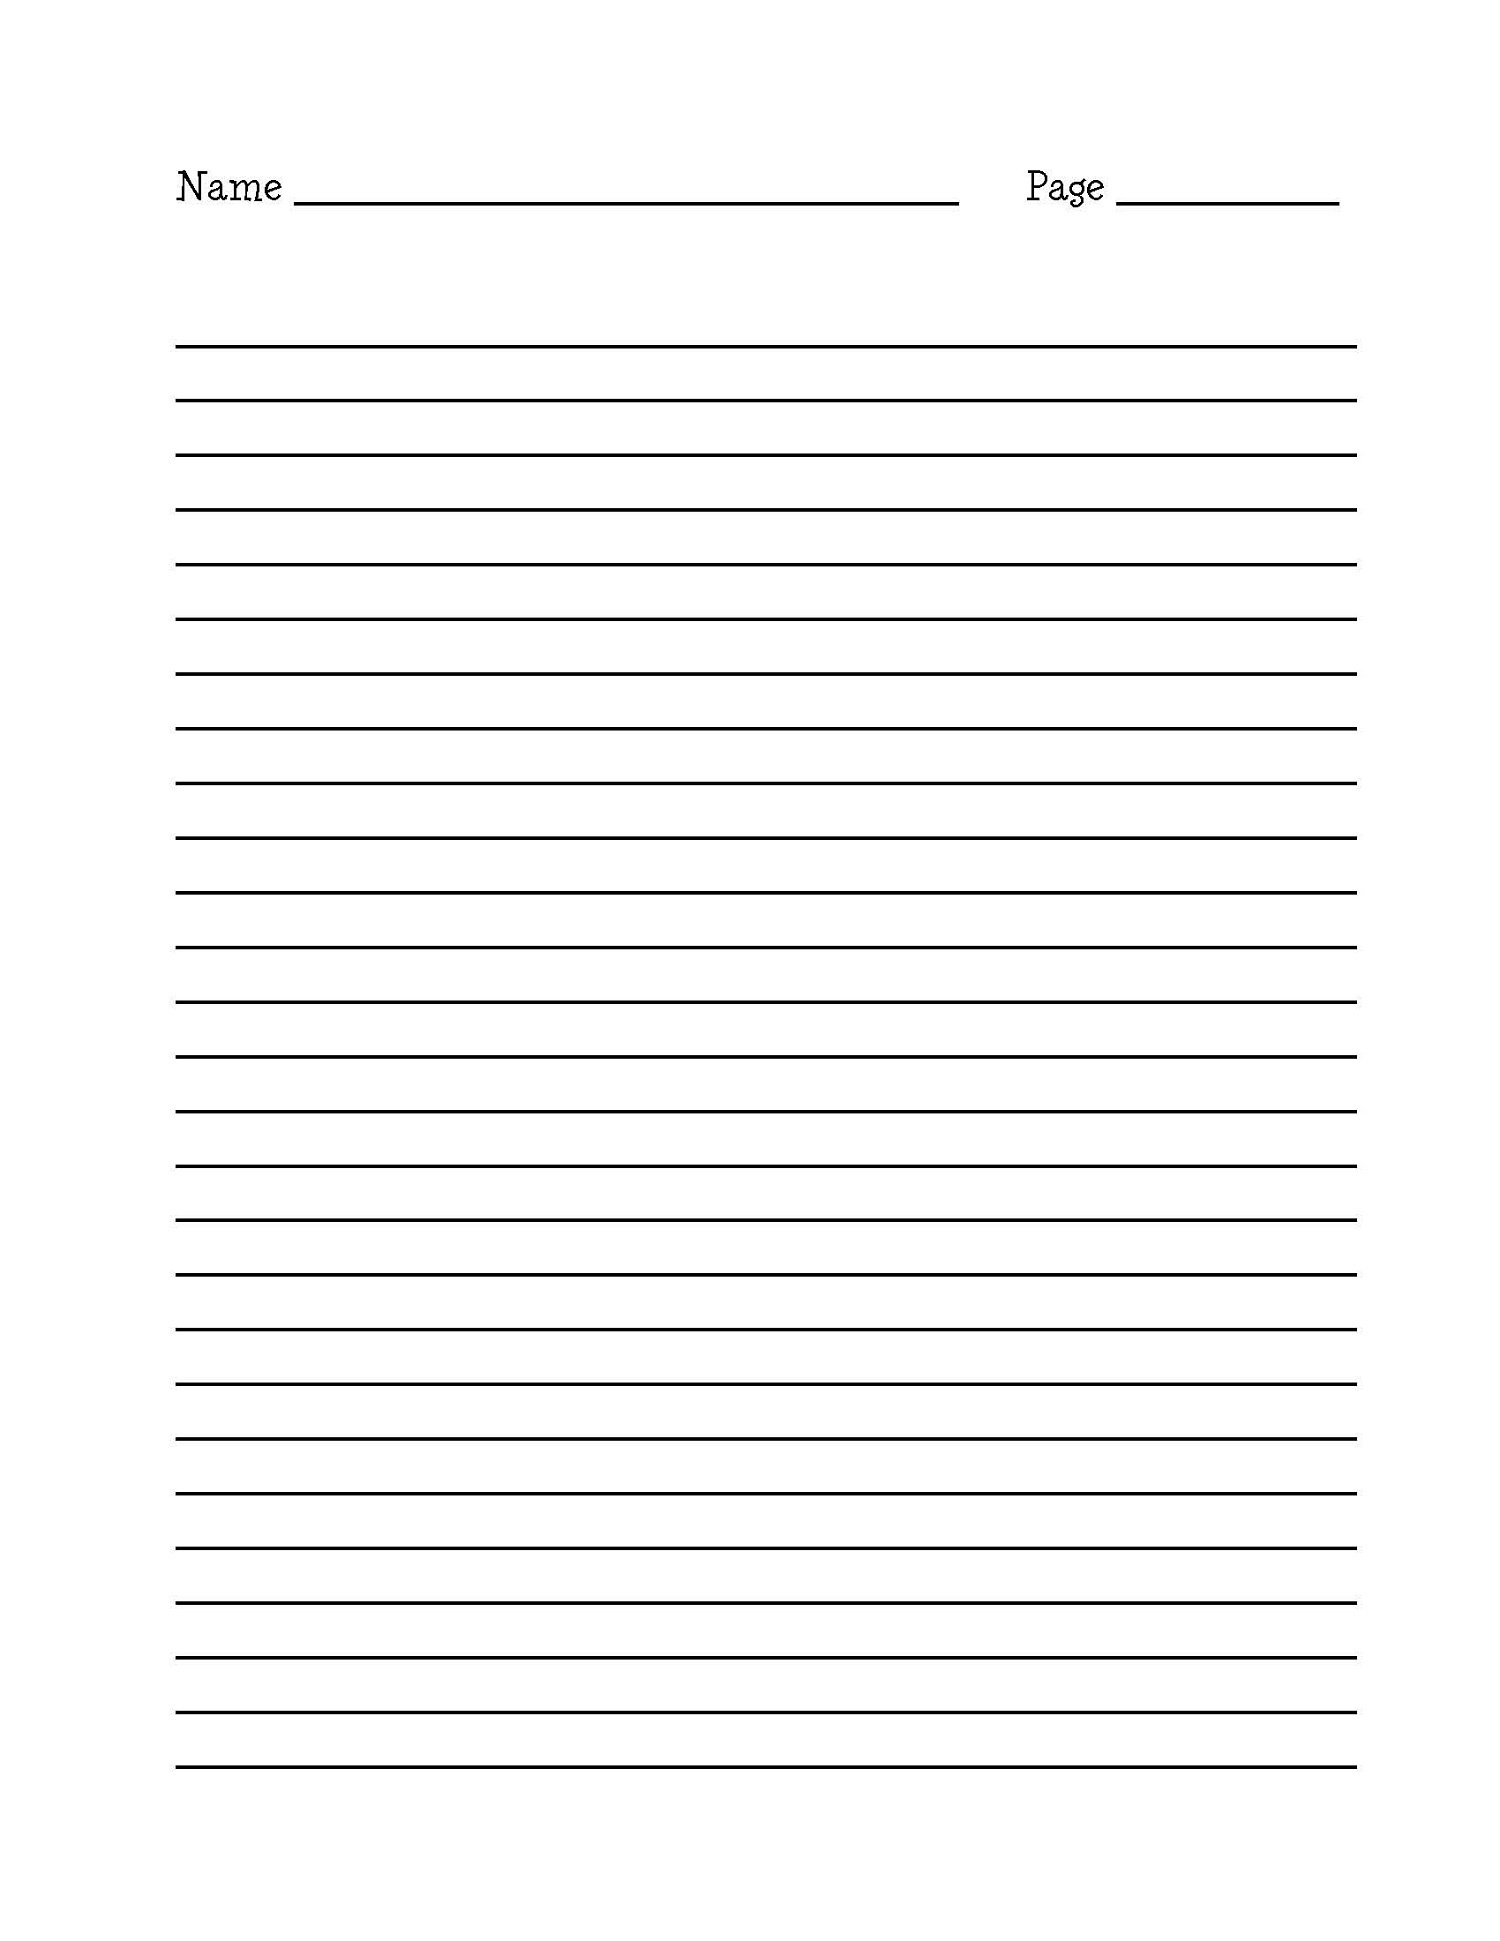 Printable Writing Paper With Border - Floss Papers - Free Printable Writing Paper With Borders